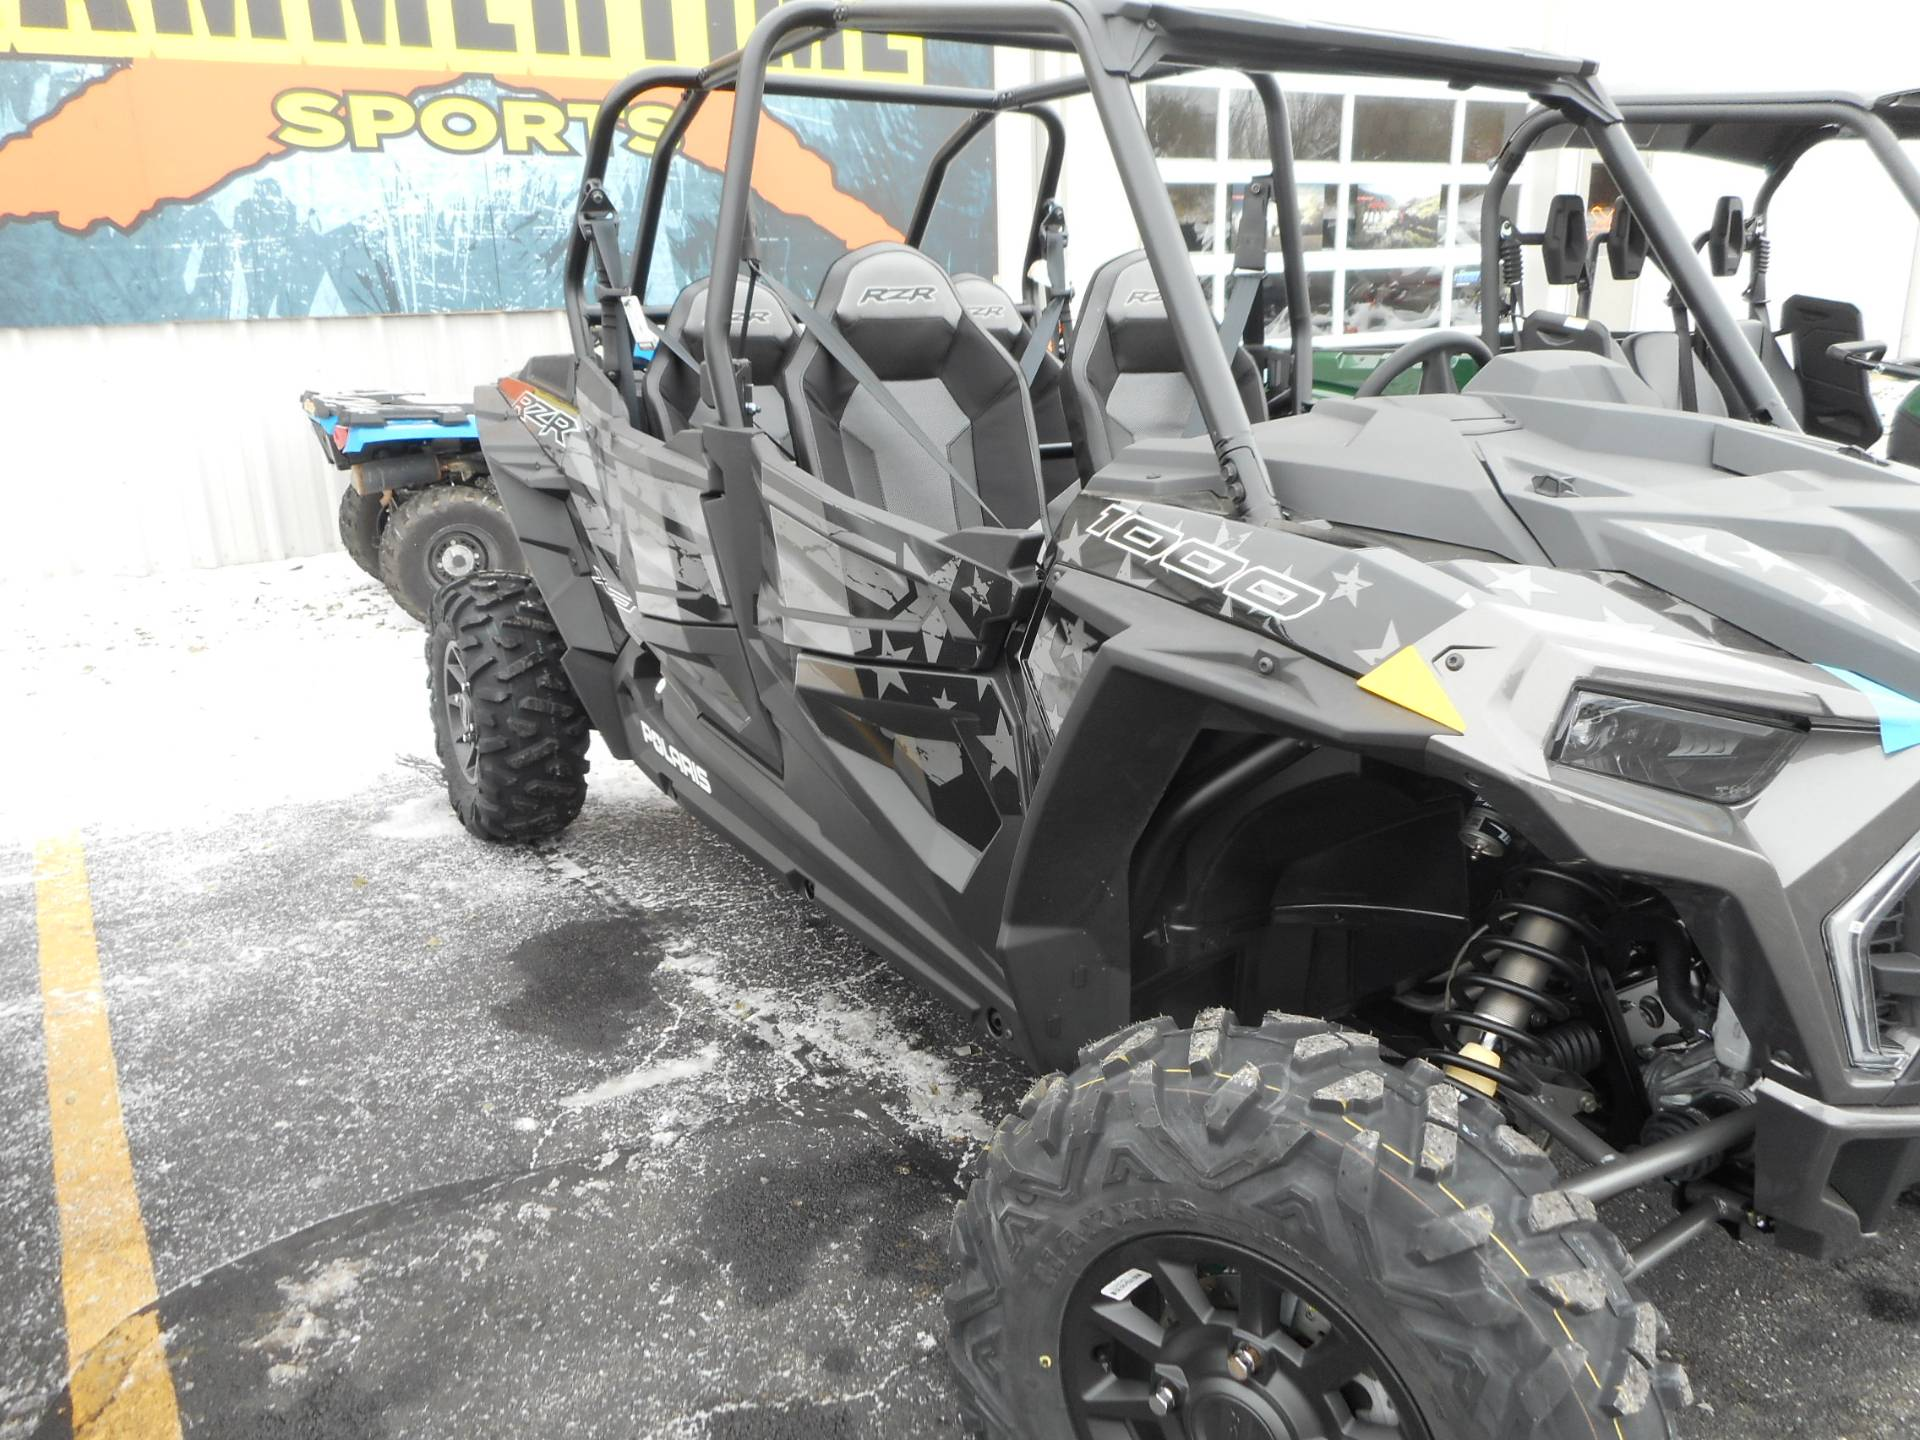 2020 Polaris RZR XP 4 1000 Limited Edition in Belvidere, Illinois - Photo 3